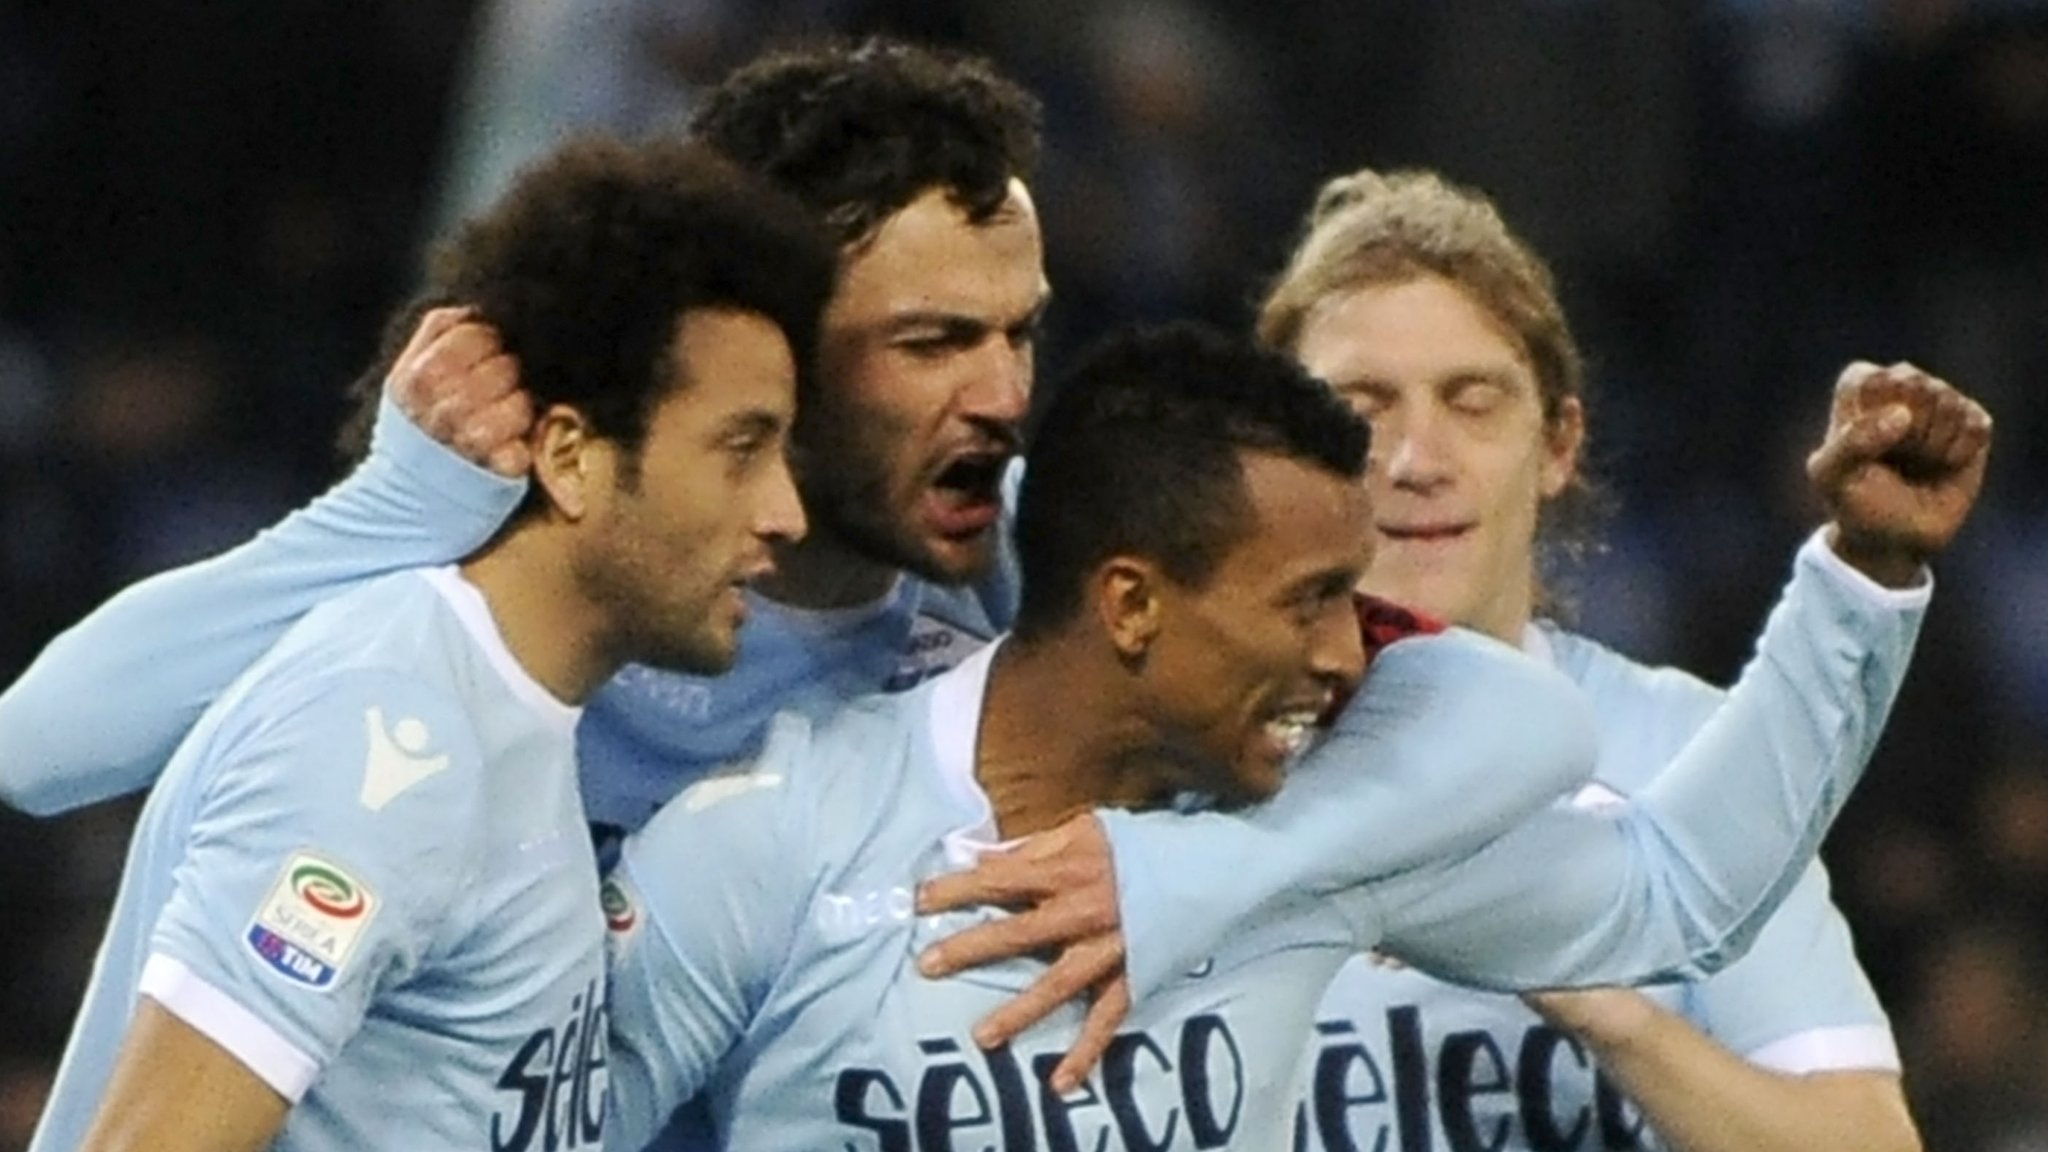 Nani scores again as Lazio stay third in Serie A